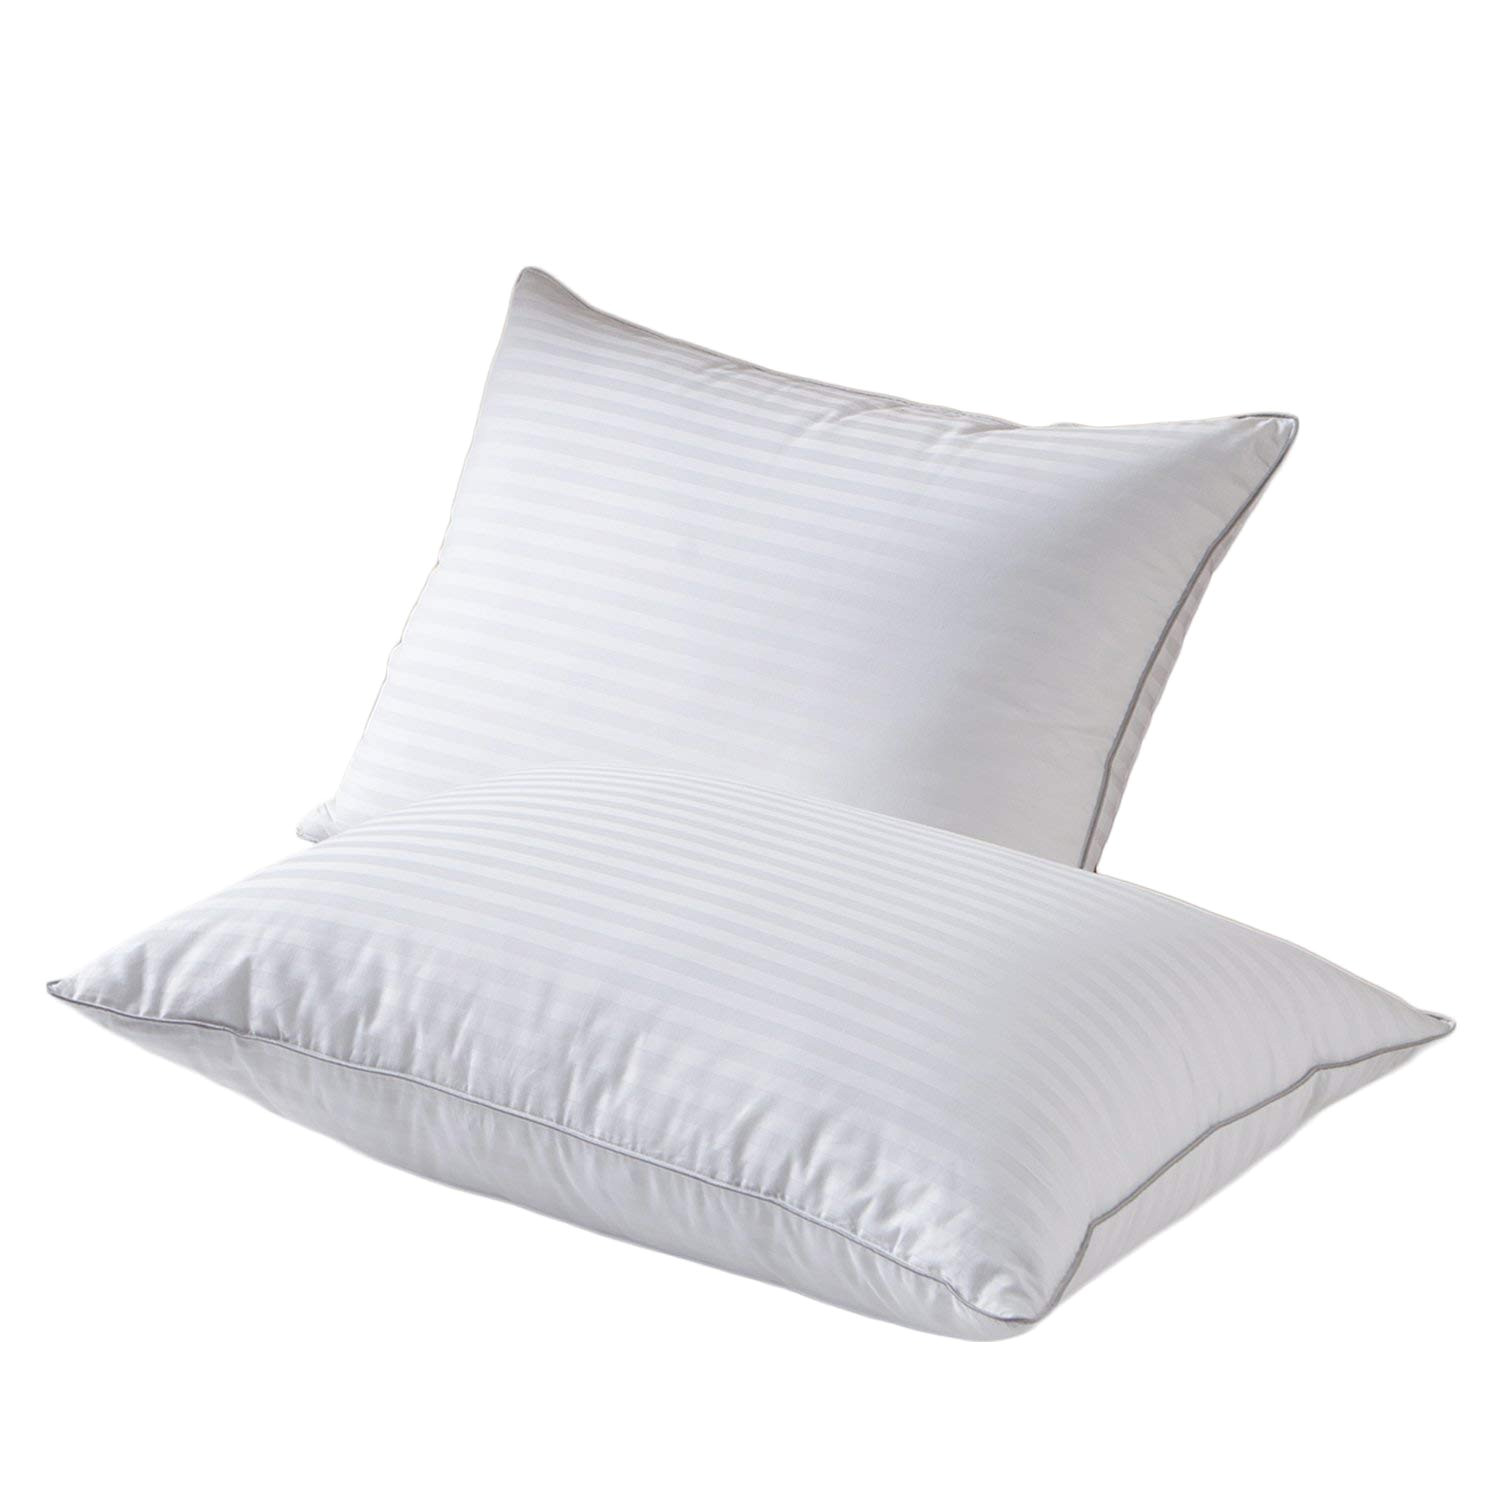 amazon com snowman white goose down feather bed pillow meduim firm 1000 thread count 1cm stripe 100 egyptian cotton cover hypoallergenic queen 1